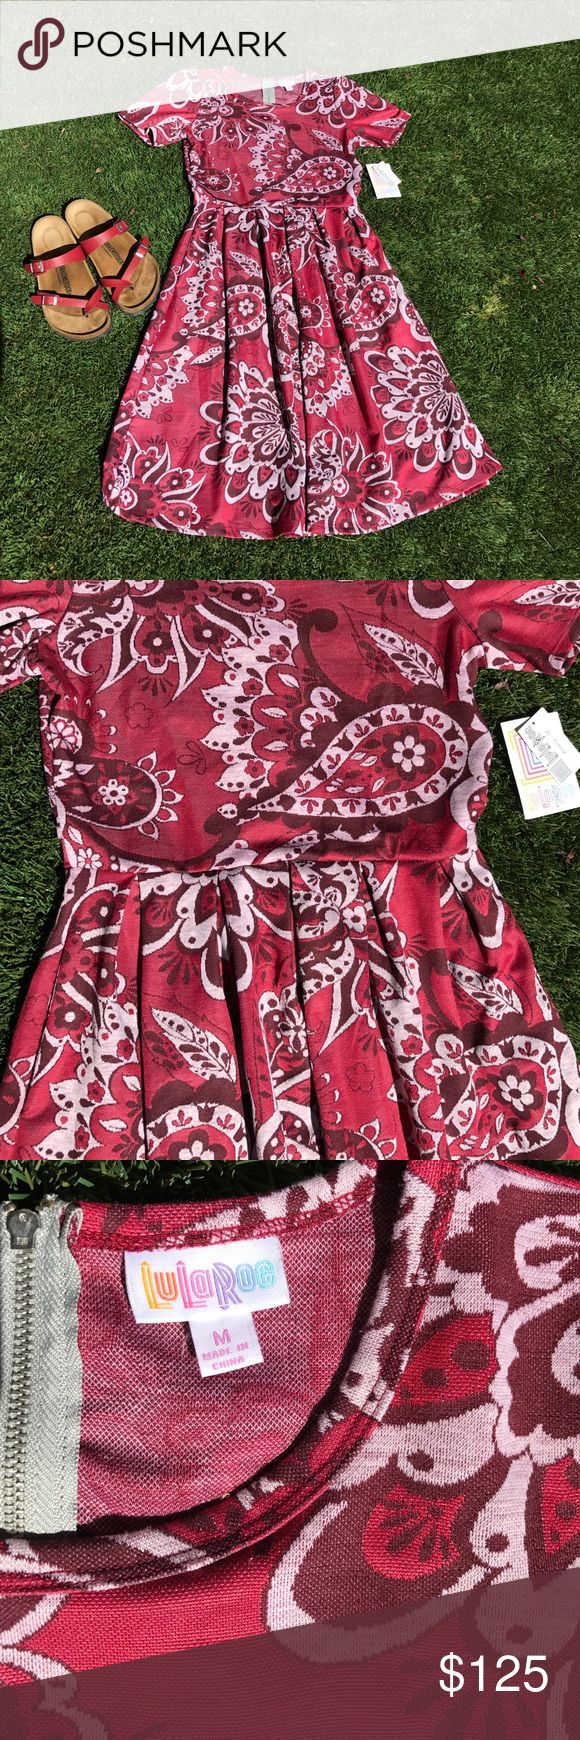 LuLaRoe Amelia Red Paisley Print. BNWT HTF LuLaRoe Amelia Dress. Size Medium.  BNWT.  Hard to Find Paisley Print!  This dress can be worn throughout the seasons. Pair it with boots, Birkenstocks, heels, or converse. Amelia is versatile and stretchy! Wear with the zipper in the back or the front!! This dress has POCKETS!! Smoke free home🦄.  Is this your Unicorn, Arrow, Elephant, Disney Roses, Paisley, or Owl Print? I provide same or next day shipping.  NOTE: Birkenstocks are NOT for sale…